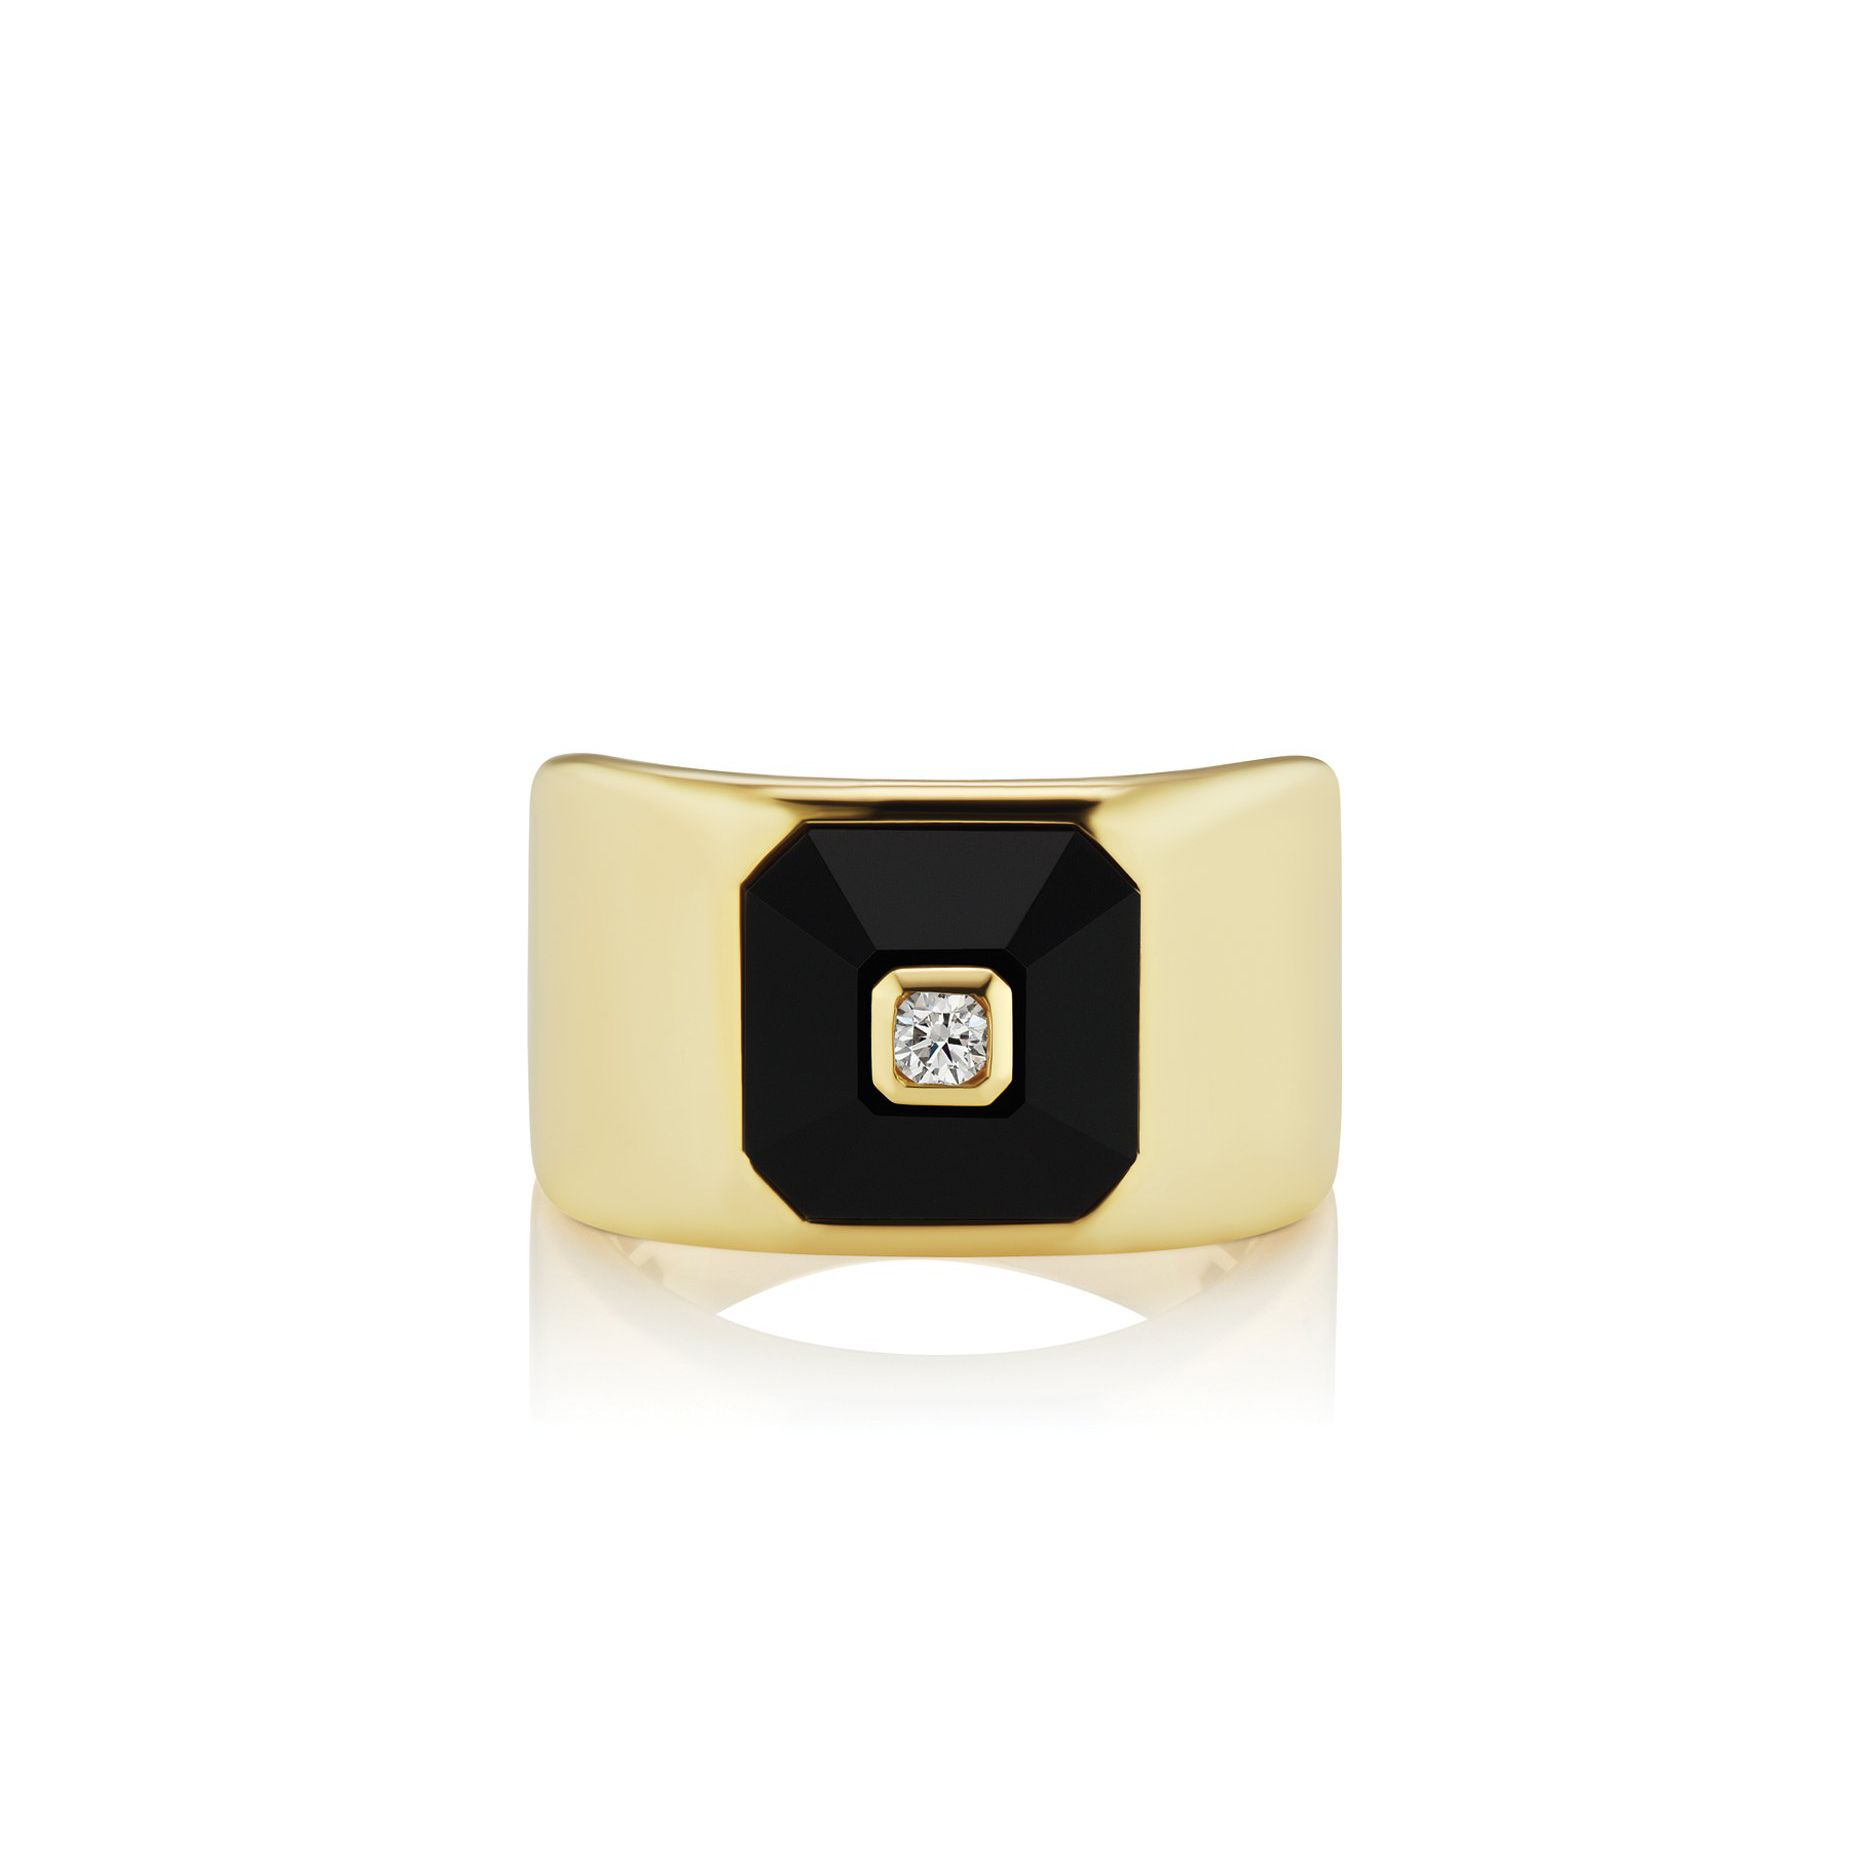 Maria Canale Pyramide Statement Onyx Ring